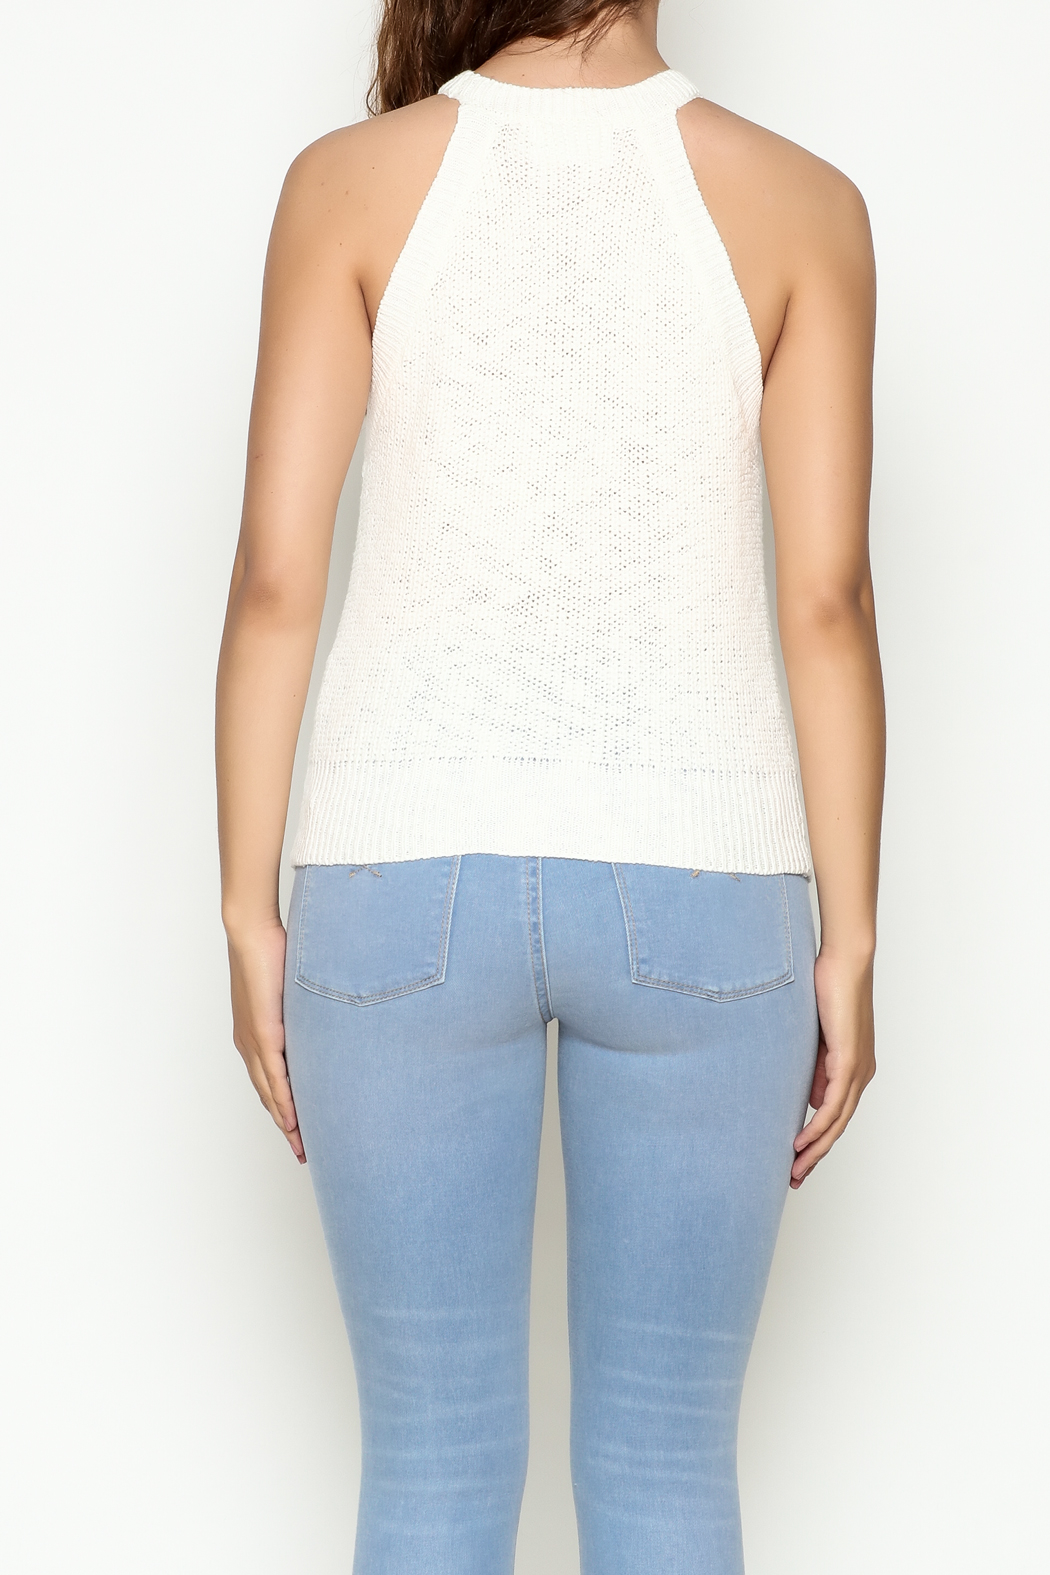 Olive & Oak Cropped White Sweater Tank - Back Cropped Image